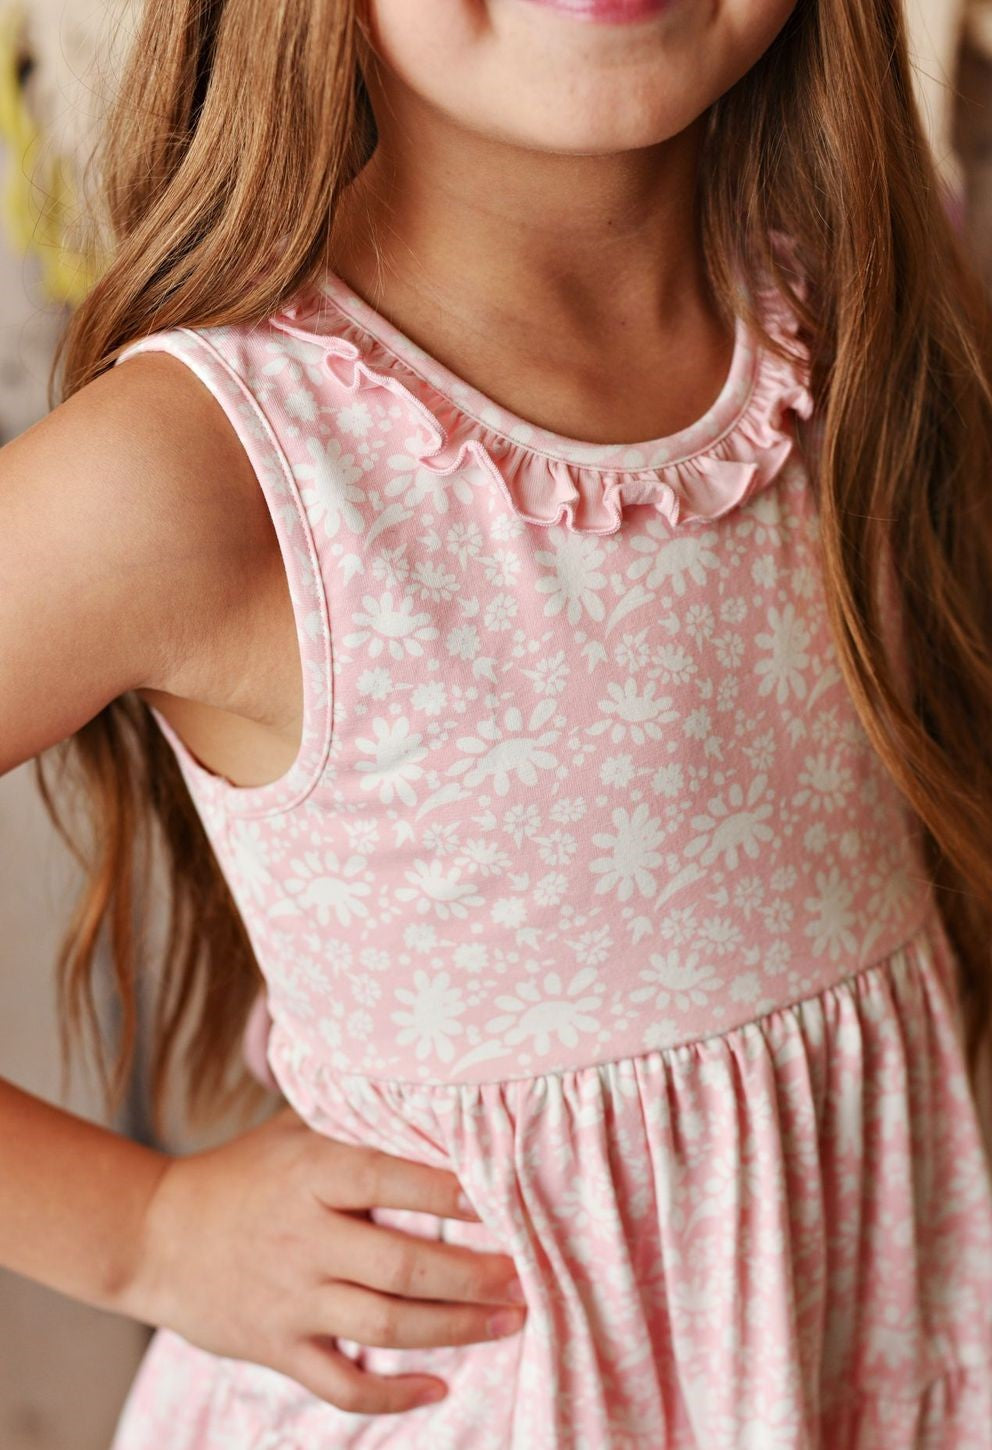 Dainty Pink Dress - Swoon Baby-Dazzled Babies Boutique